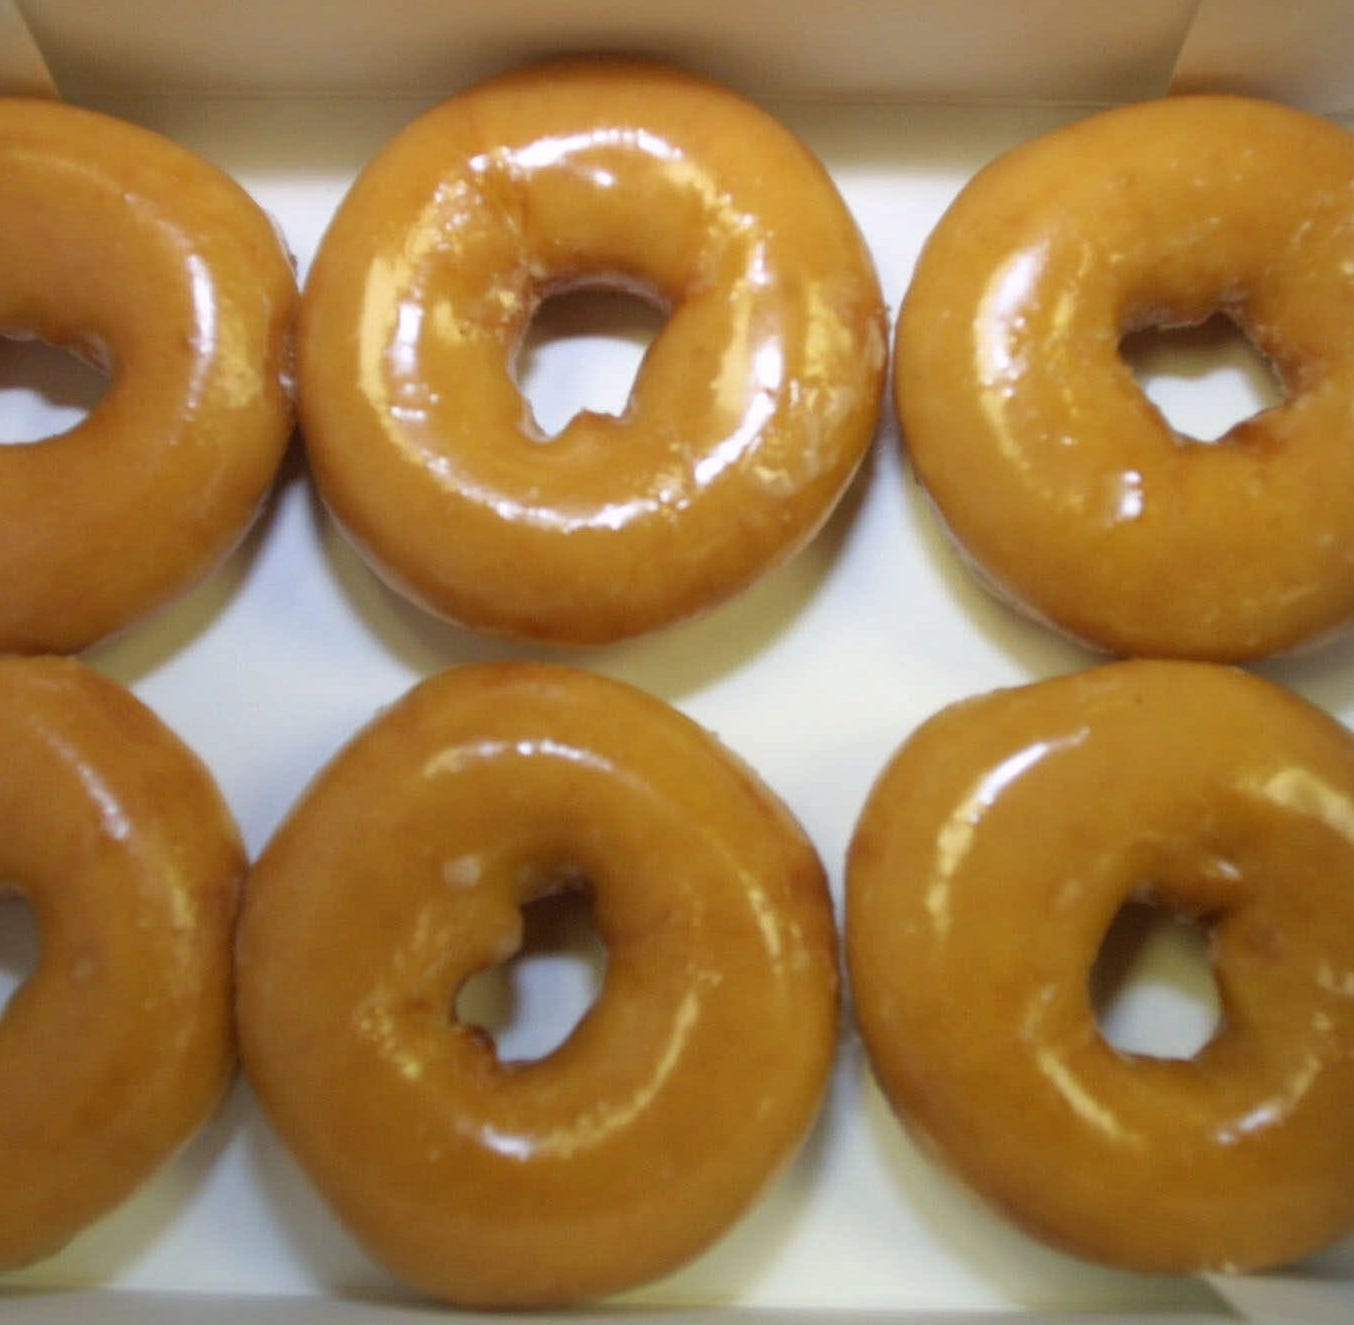 Zoning board document confirms: Krispy Kreme is coming to East Rutherford